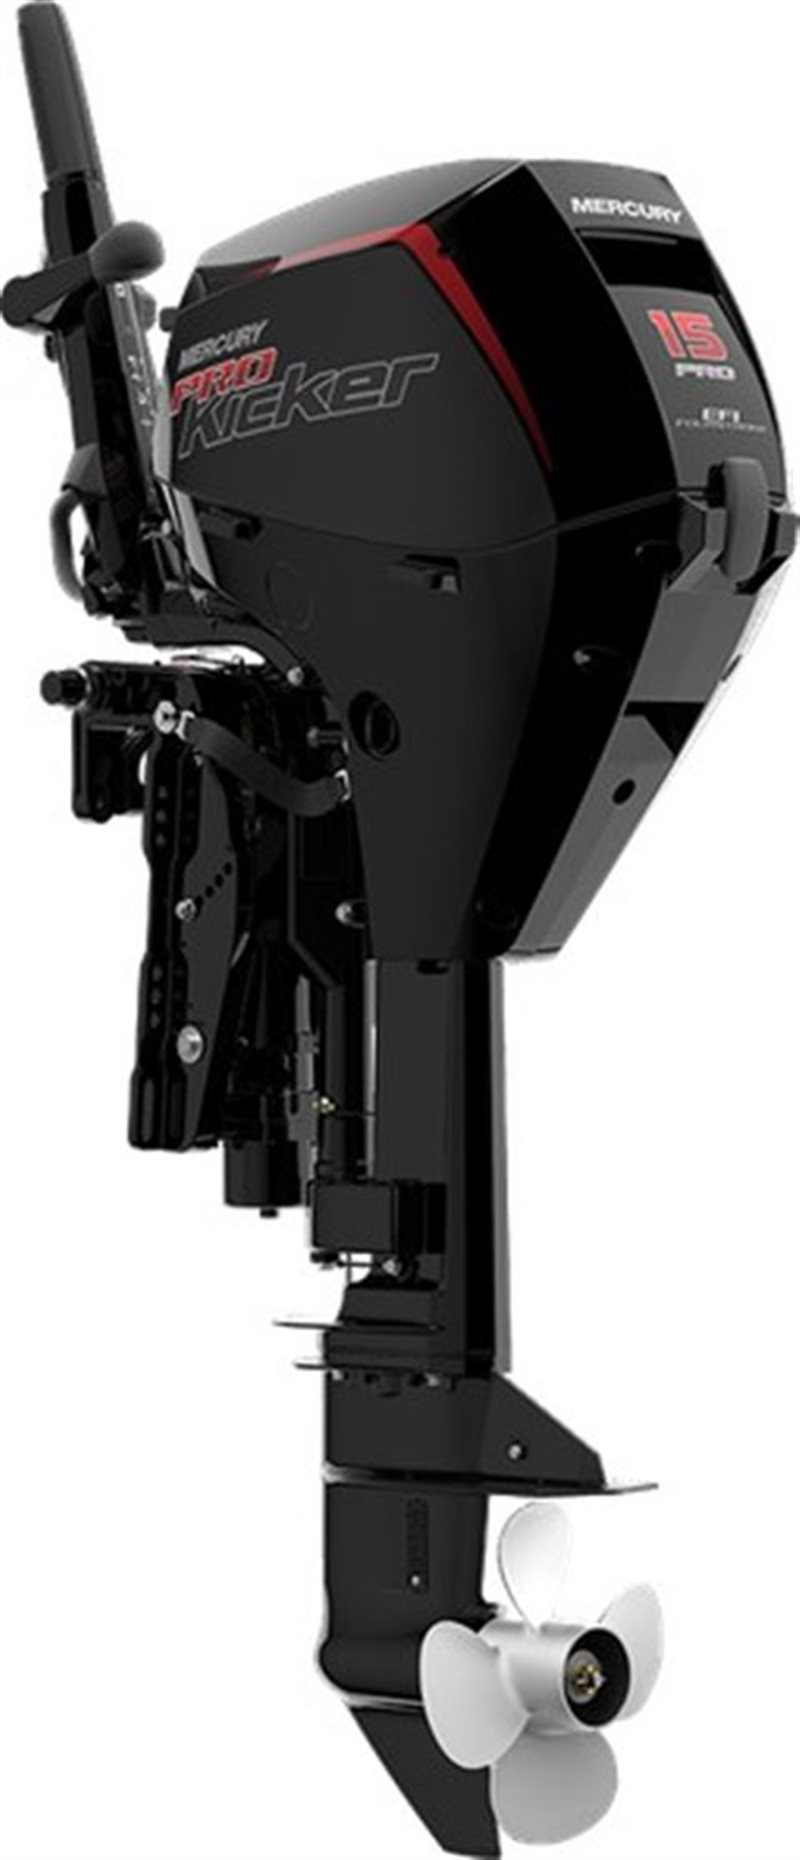 2020 Mercury Outboard FourStroke 15-20 hp 15 EFI at DT Powersports & Marine